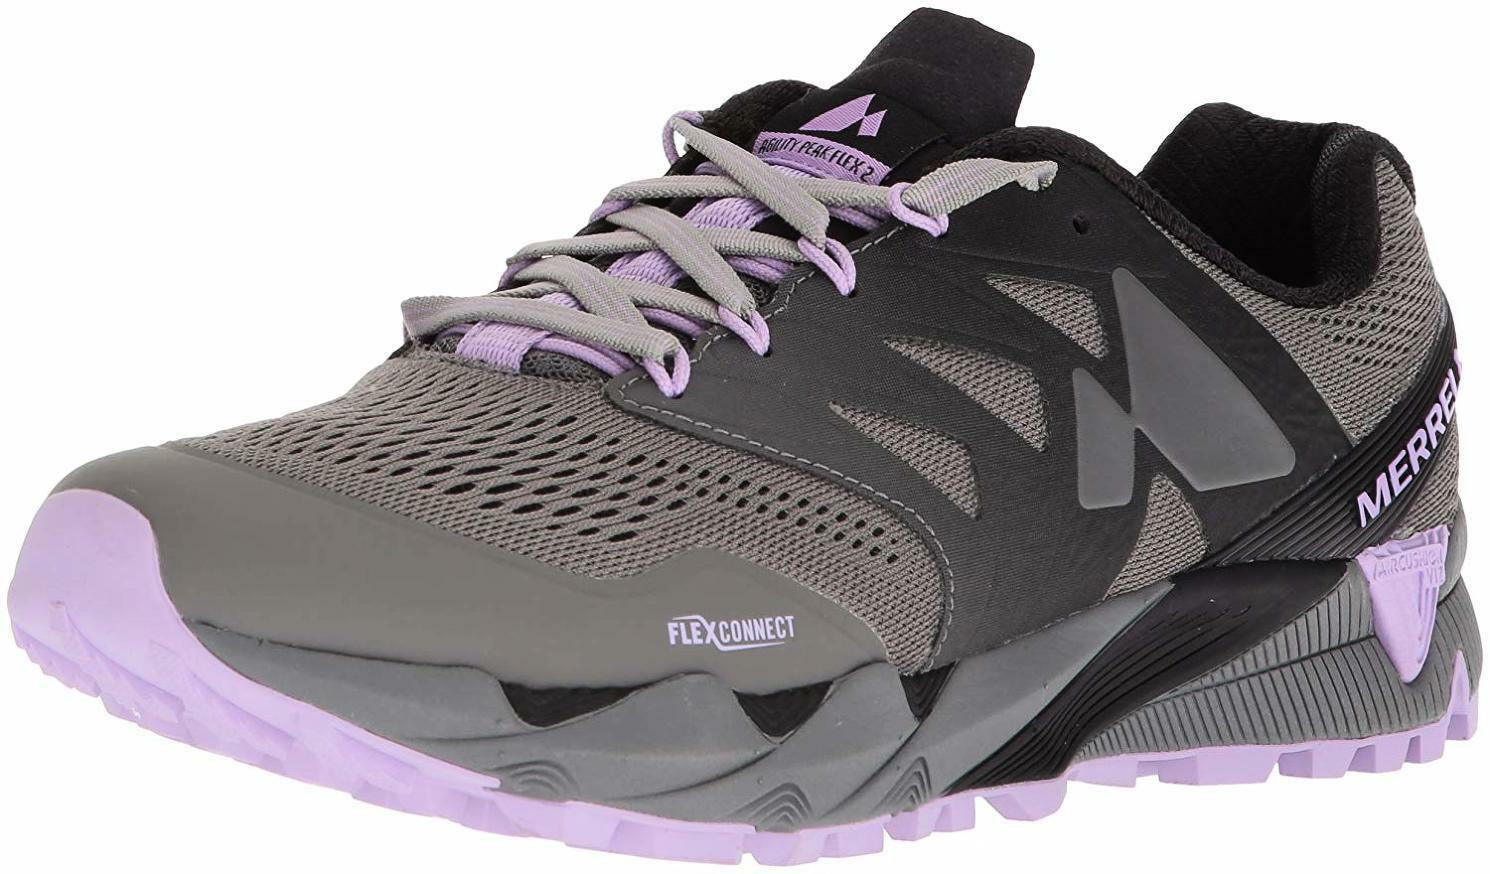 Merrell Women's Agility Peak Flex 2 E-mesh Sneaker, - Choose SZ color